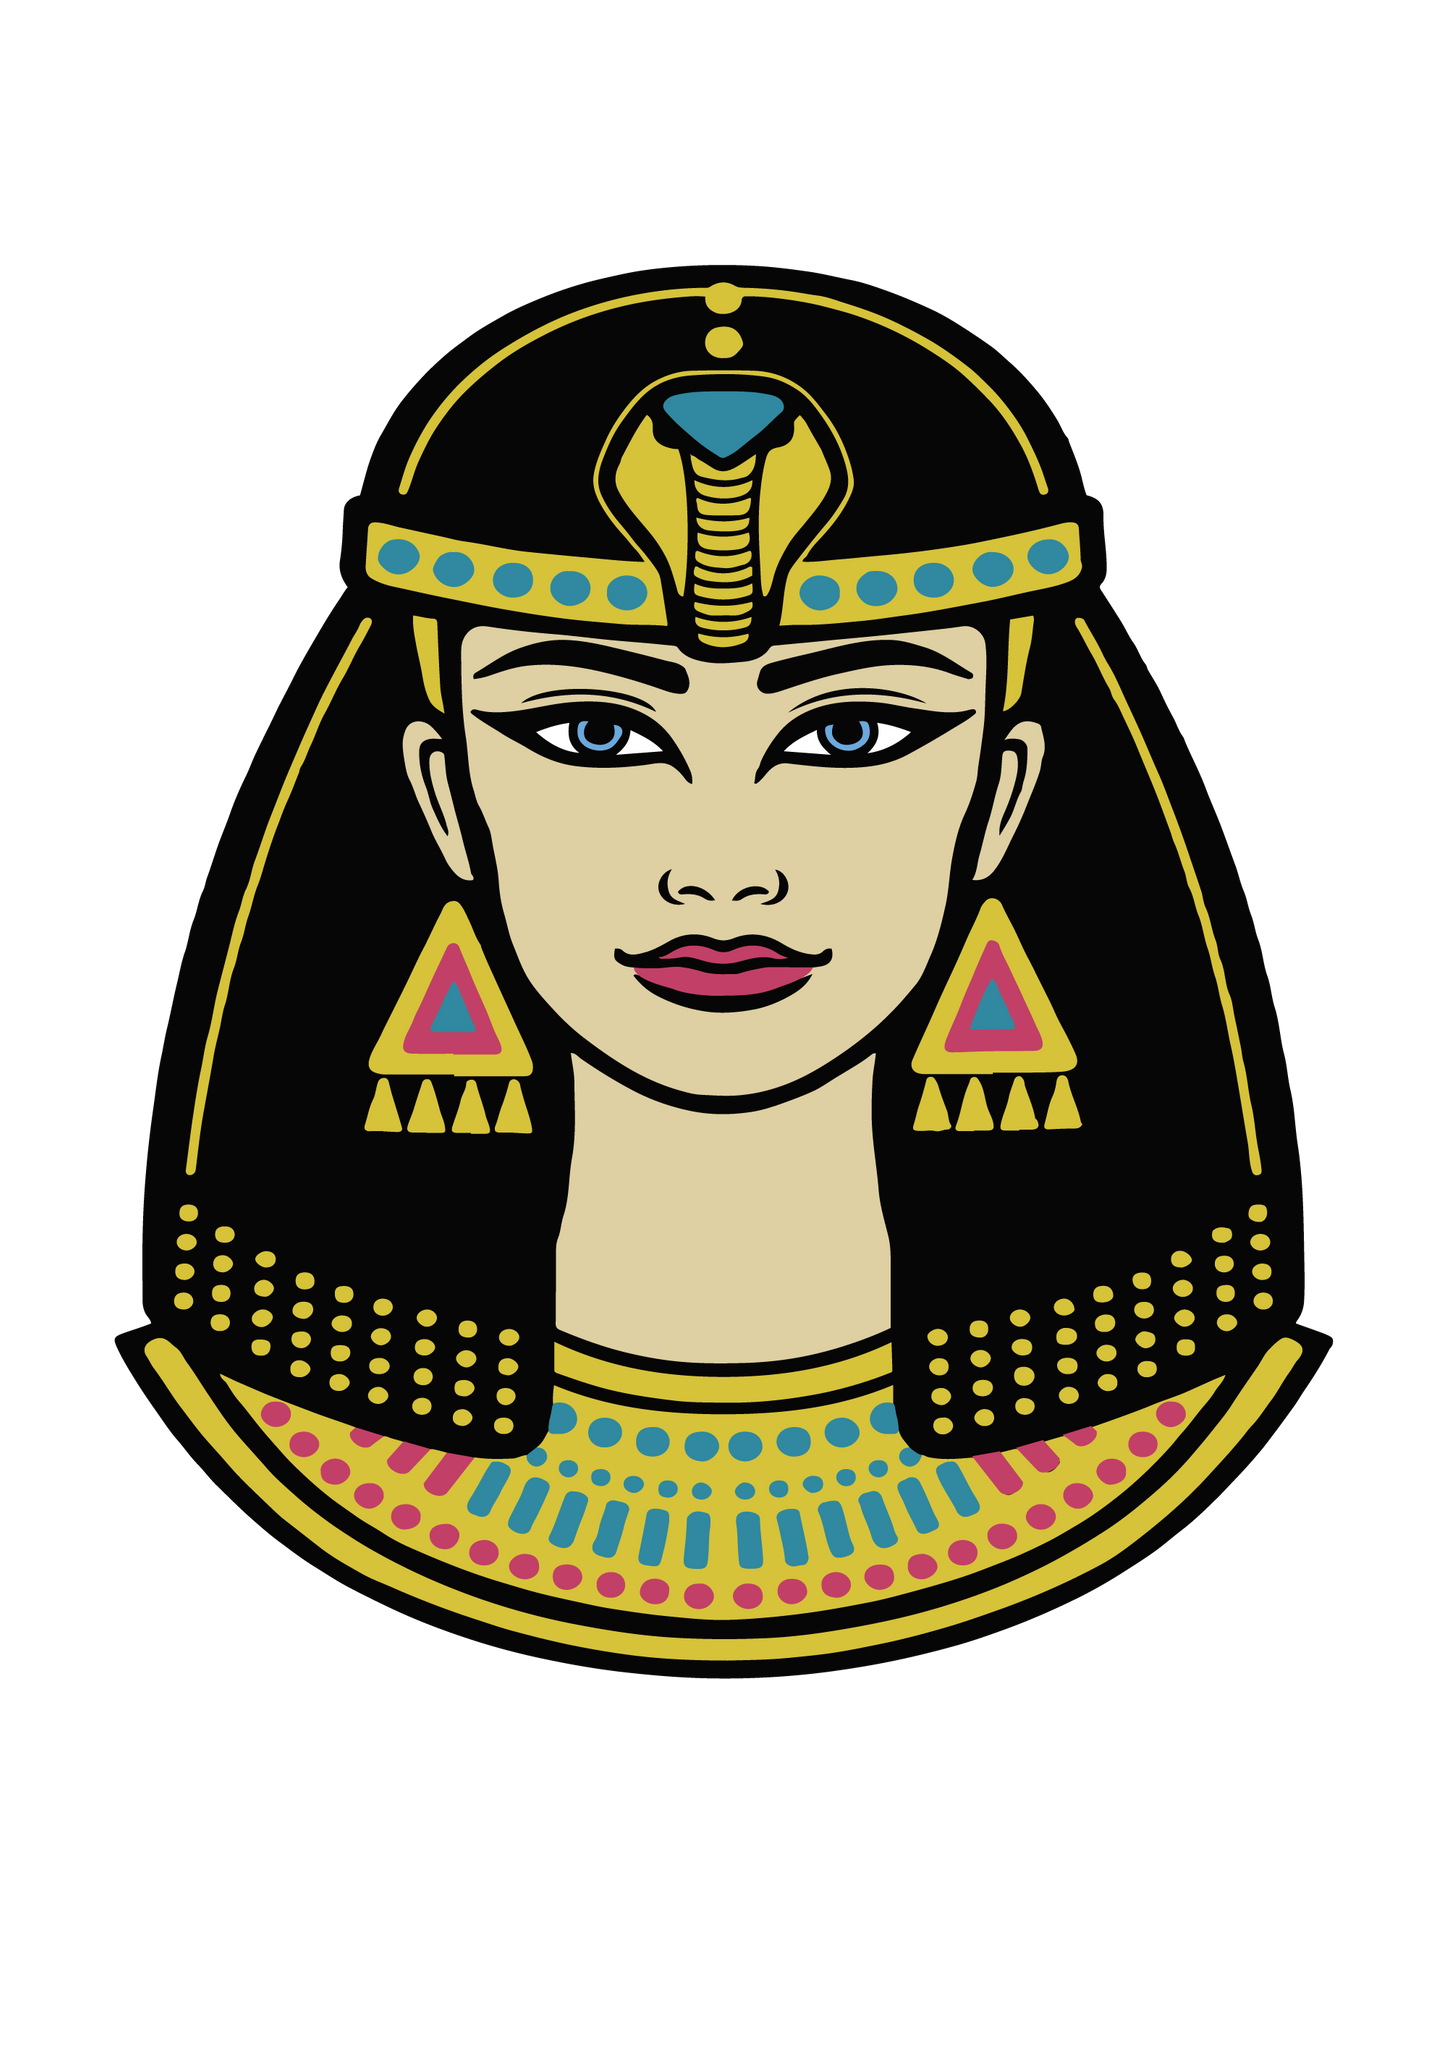 Free SVG File for Download - Cleopatra